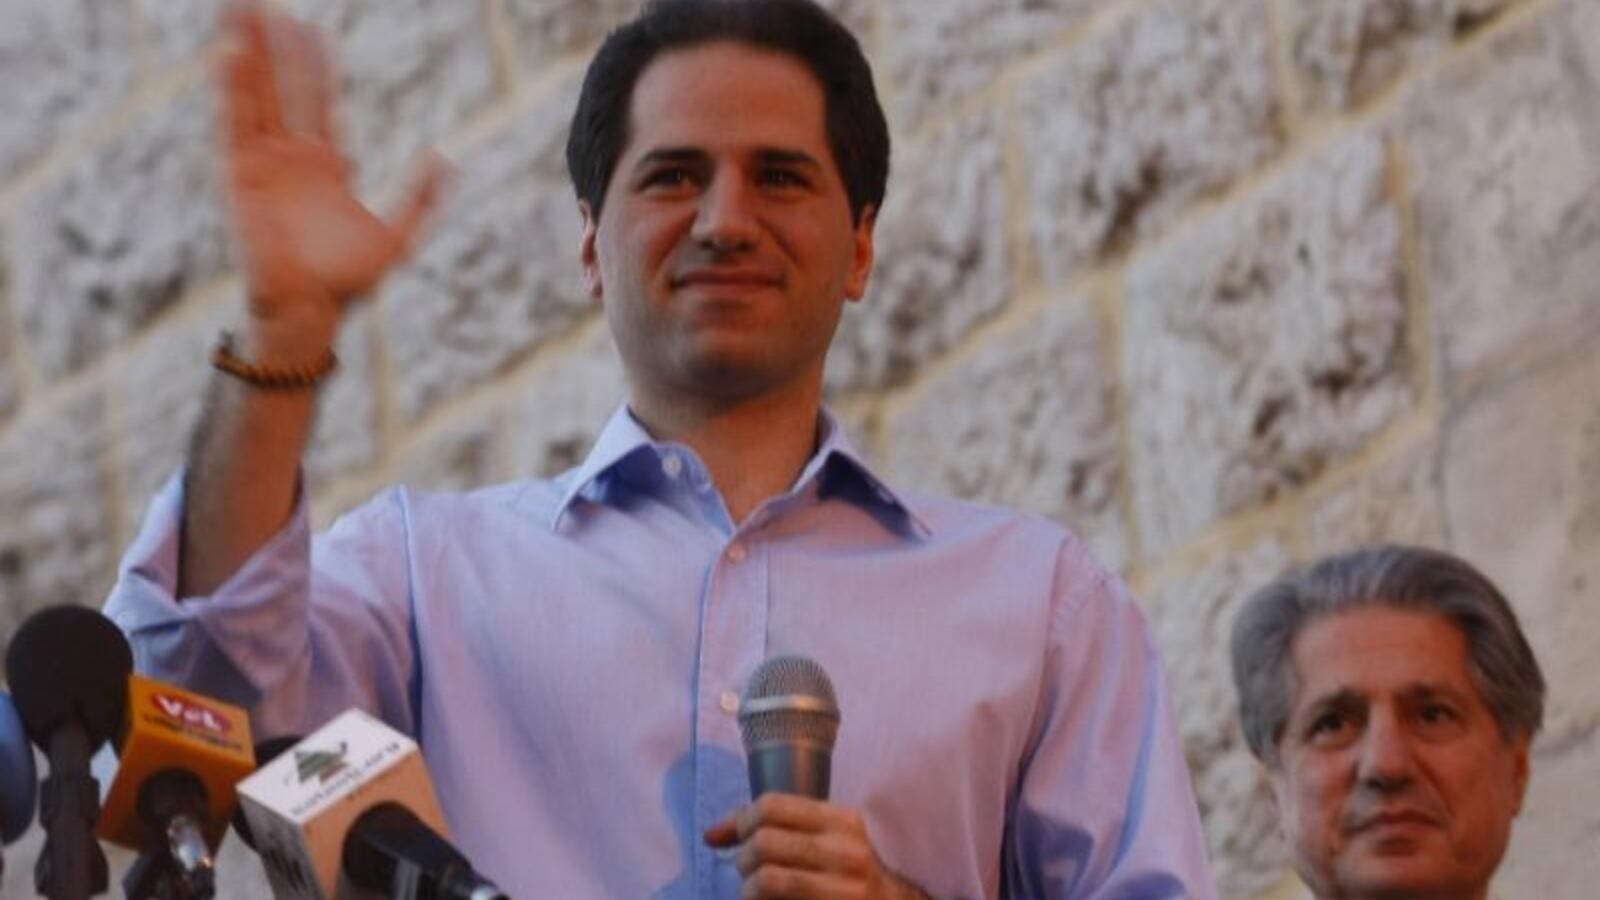 Lebanese Maronite Christian MP Sami Gemayel waves to the crowd. (AFP/File)